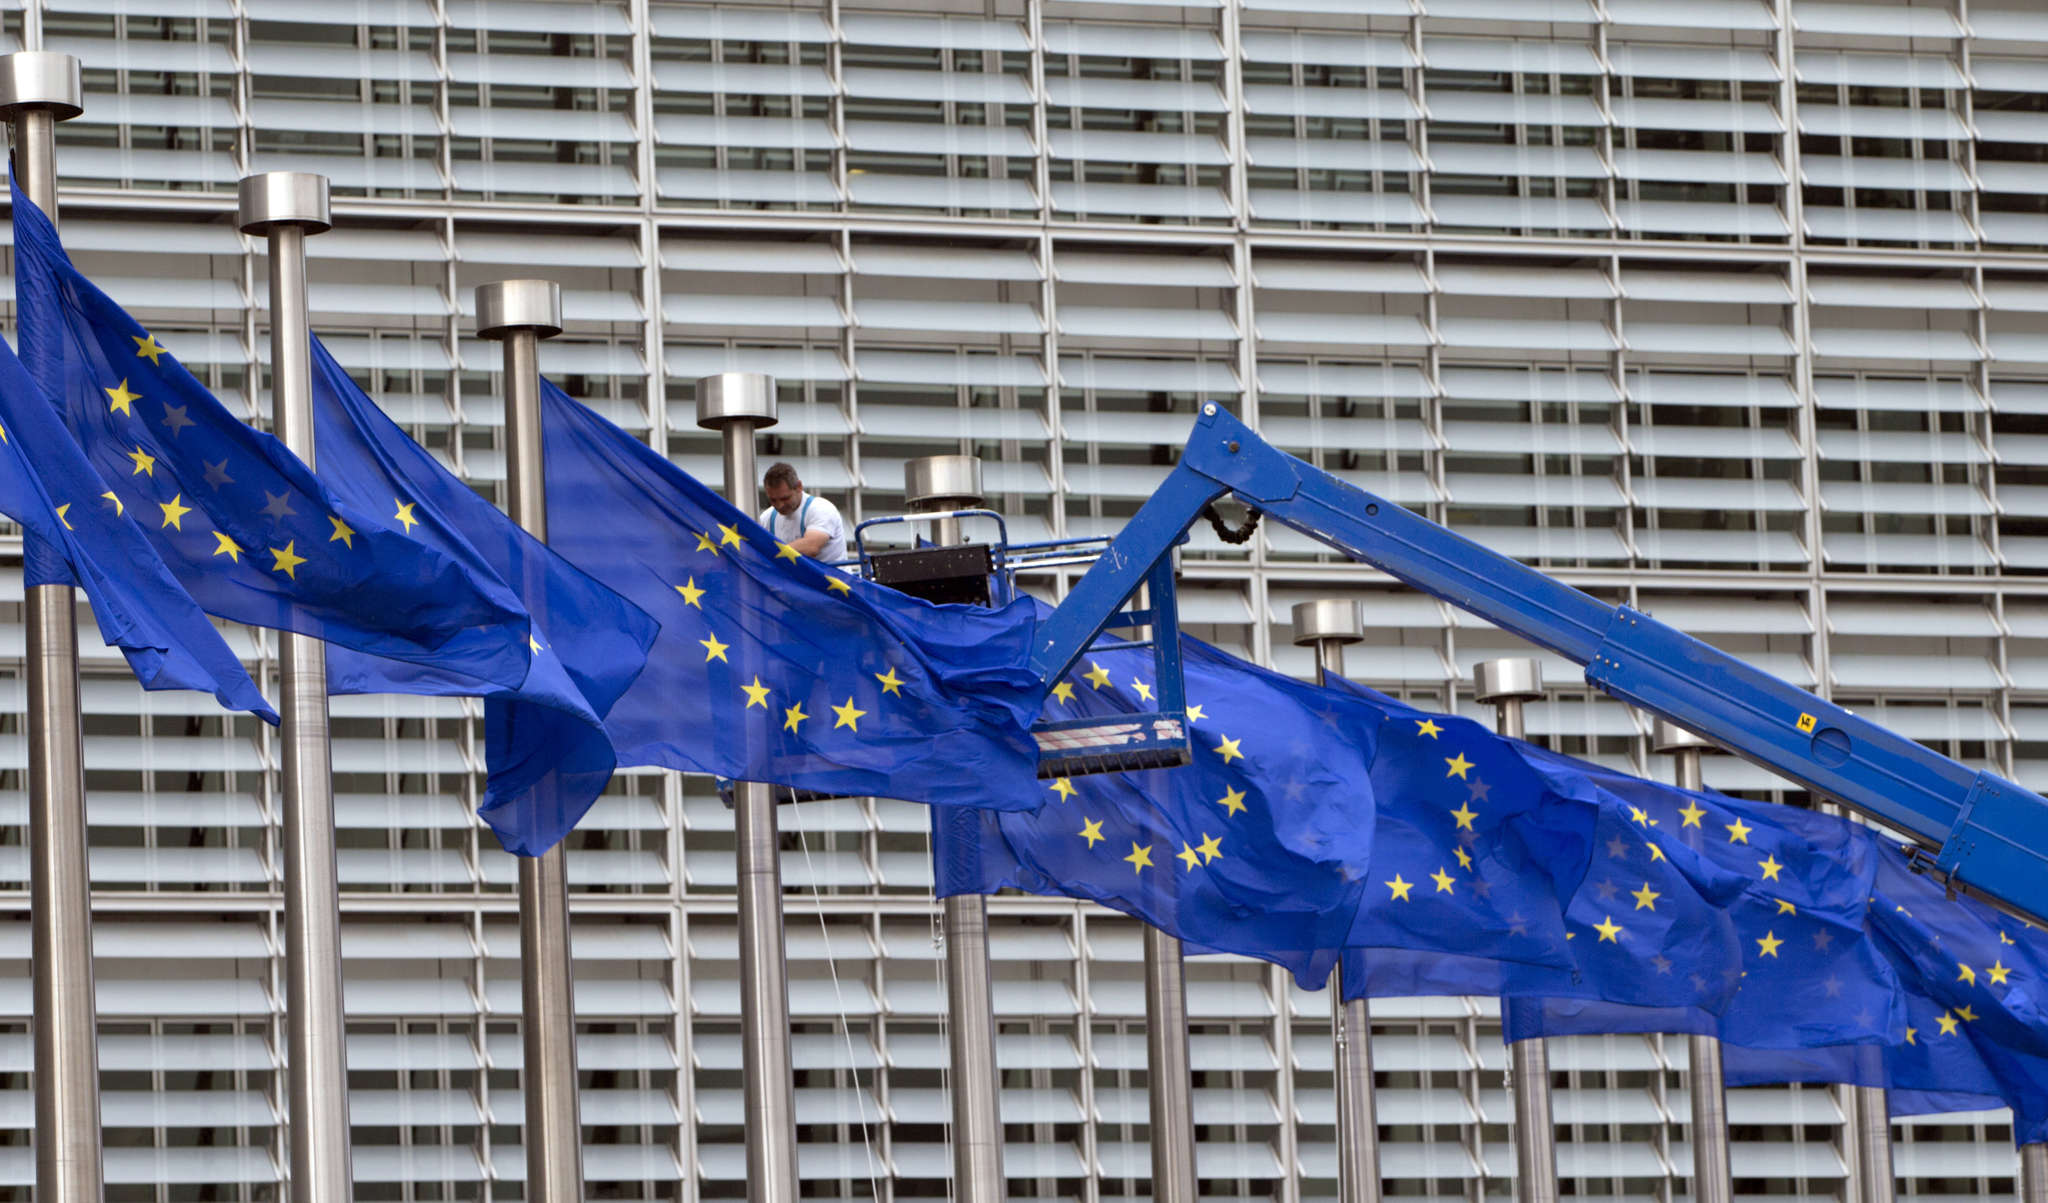 A worker makes flag adjustments at EU headquarters in Brussels. The Brexit vote has caused complications for firms.